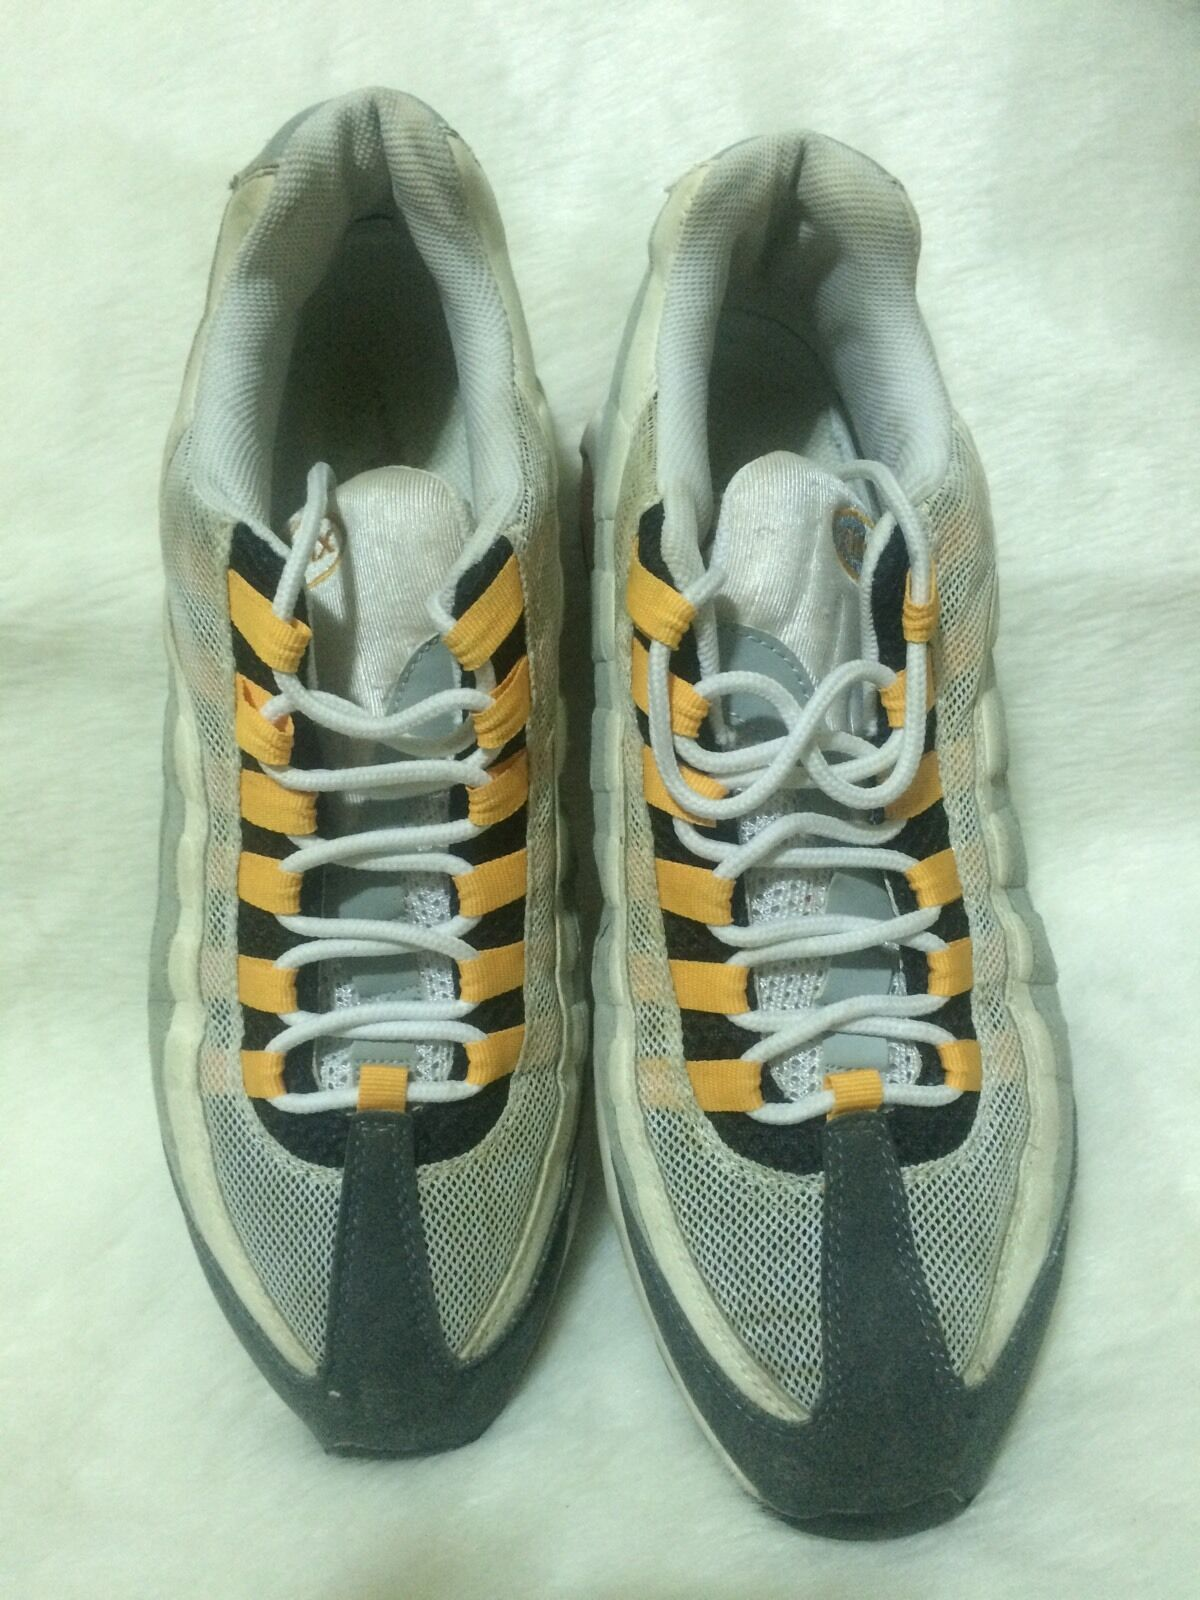 NIKE MEN'S AIR MAX 95 SHOES Mint Style 609048-095 Size13